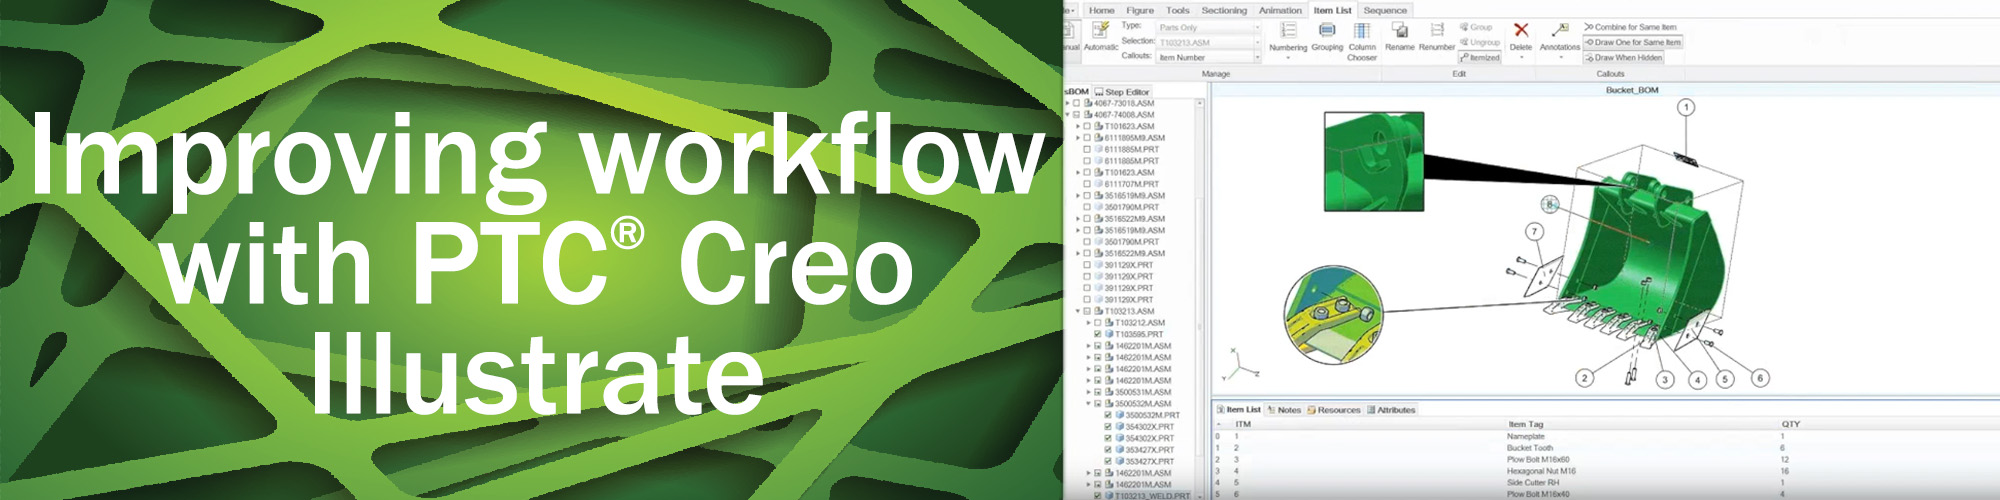 Improve workflow with Creo Illustrate